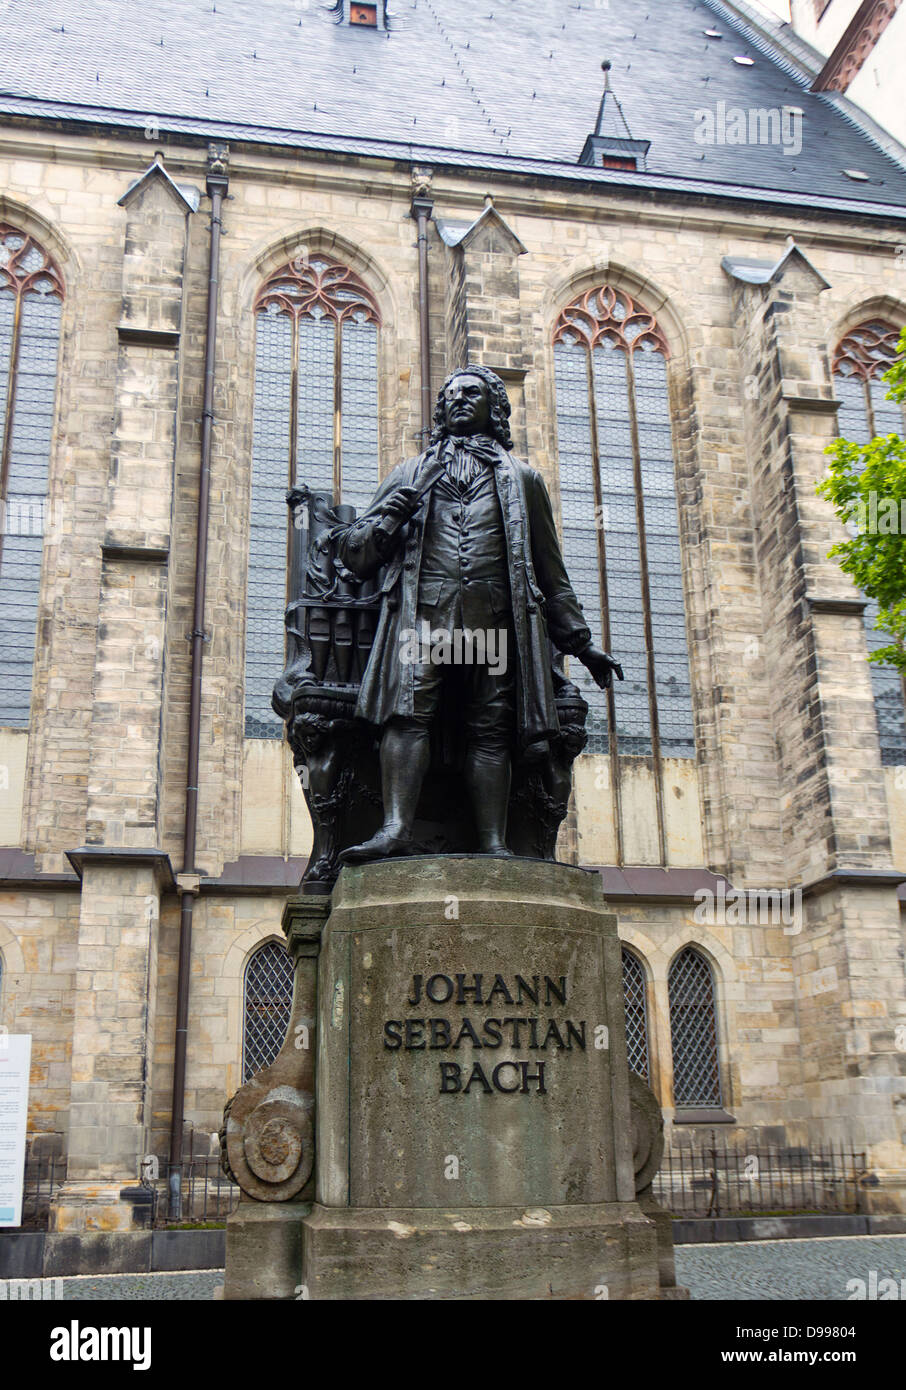 Stature of J.S.Bach outside St. Thomas Church, Leipzig, Germany - Stock Image